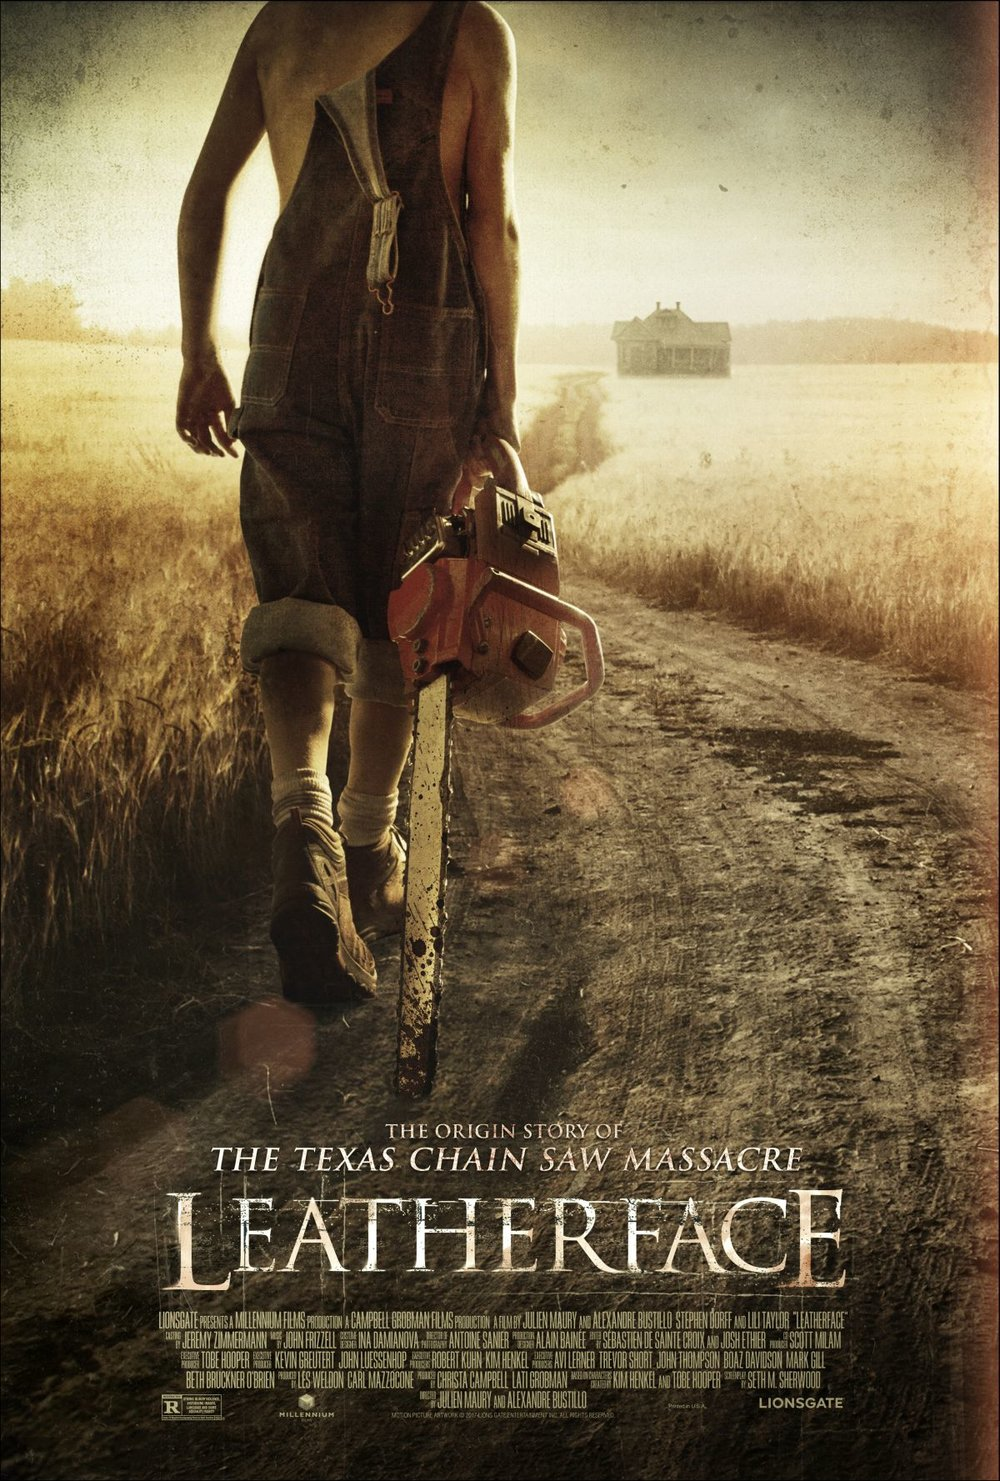 leatherface-gets-a-new-poster-and-intense-clip-featuring-stephen-dorff-as-a-vengeful-lawman1